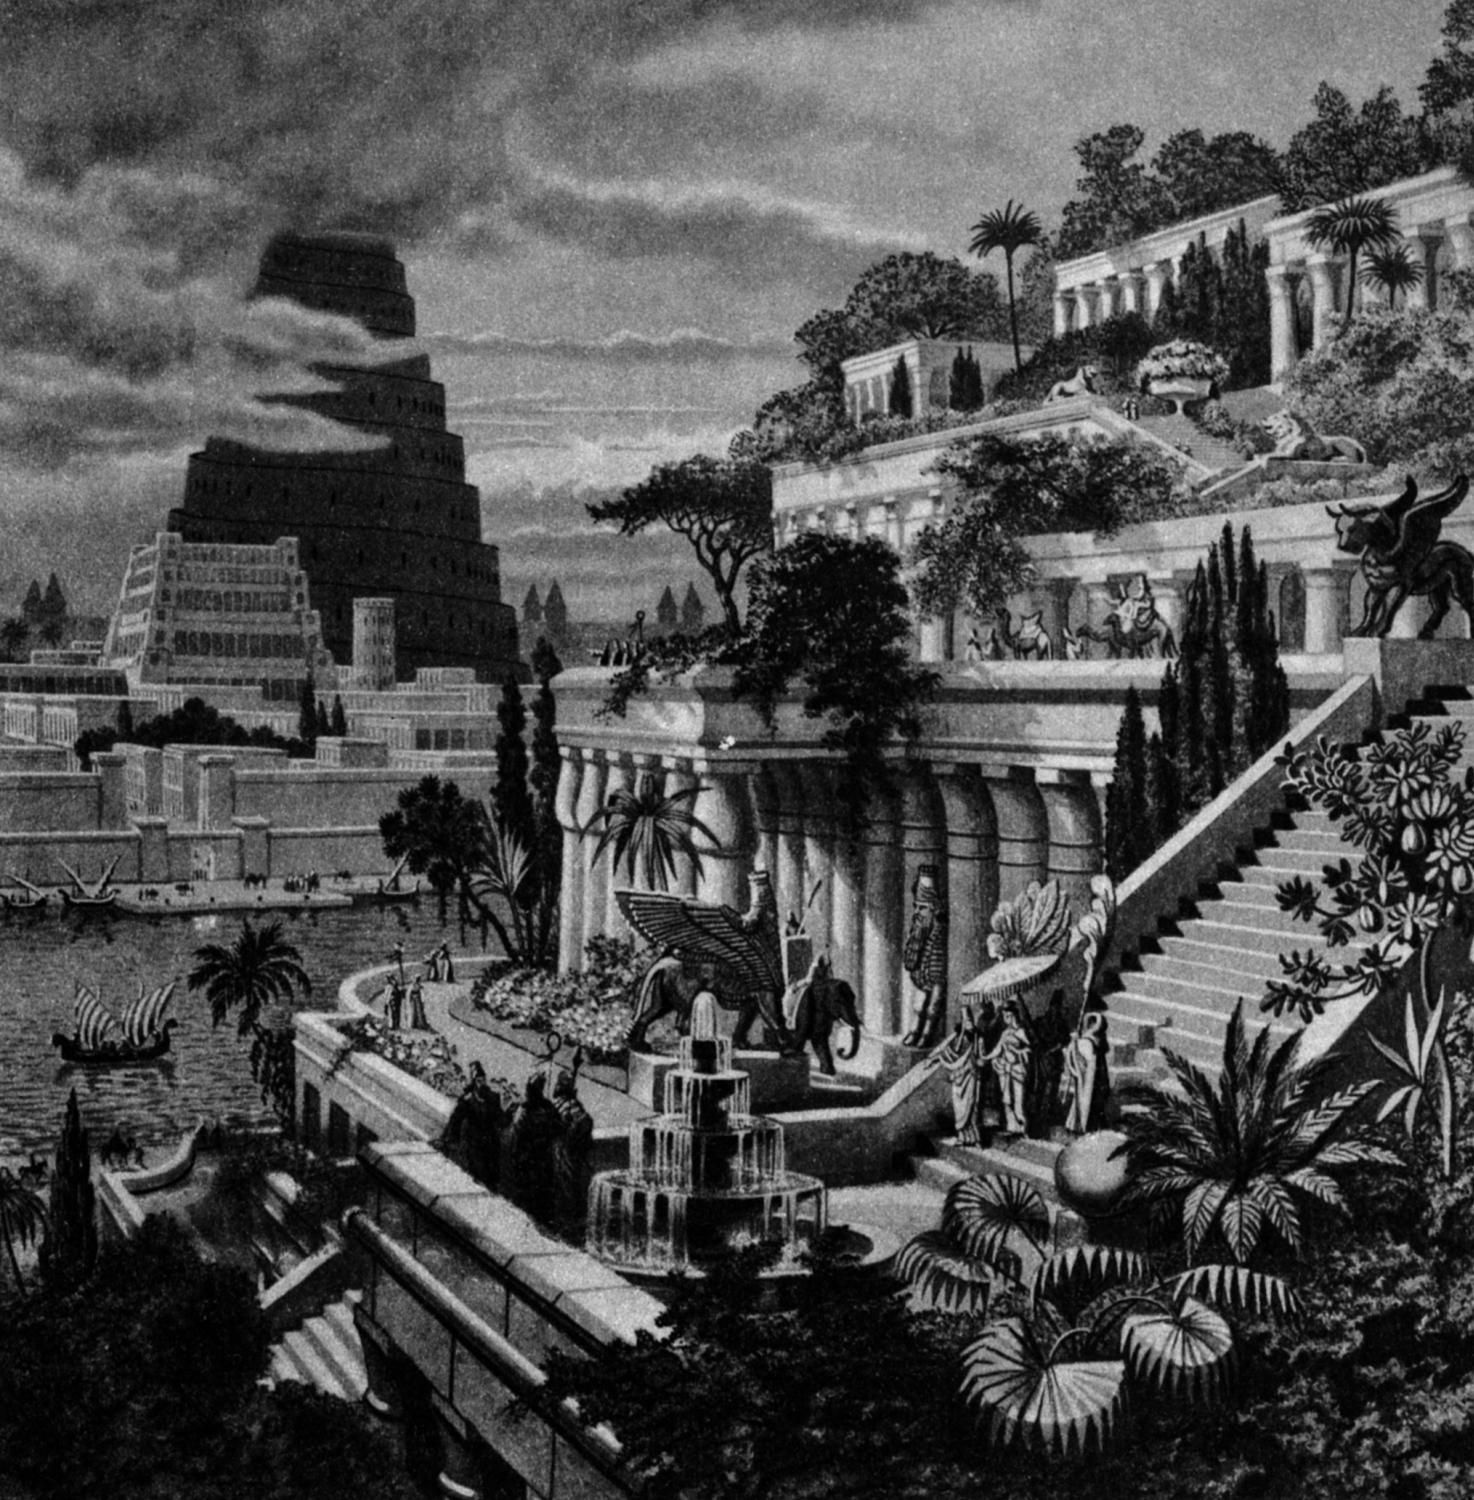 2d87ce9f0434b28f1063d6d8b89f5067 - Hanging Gardens Of Babylon Primary Sources